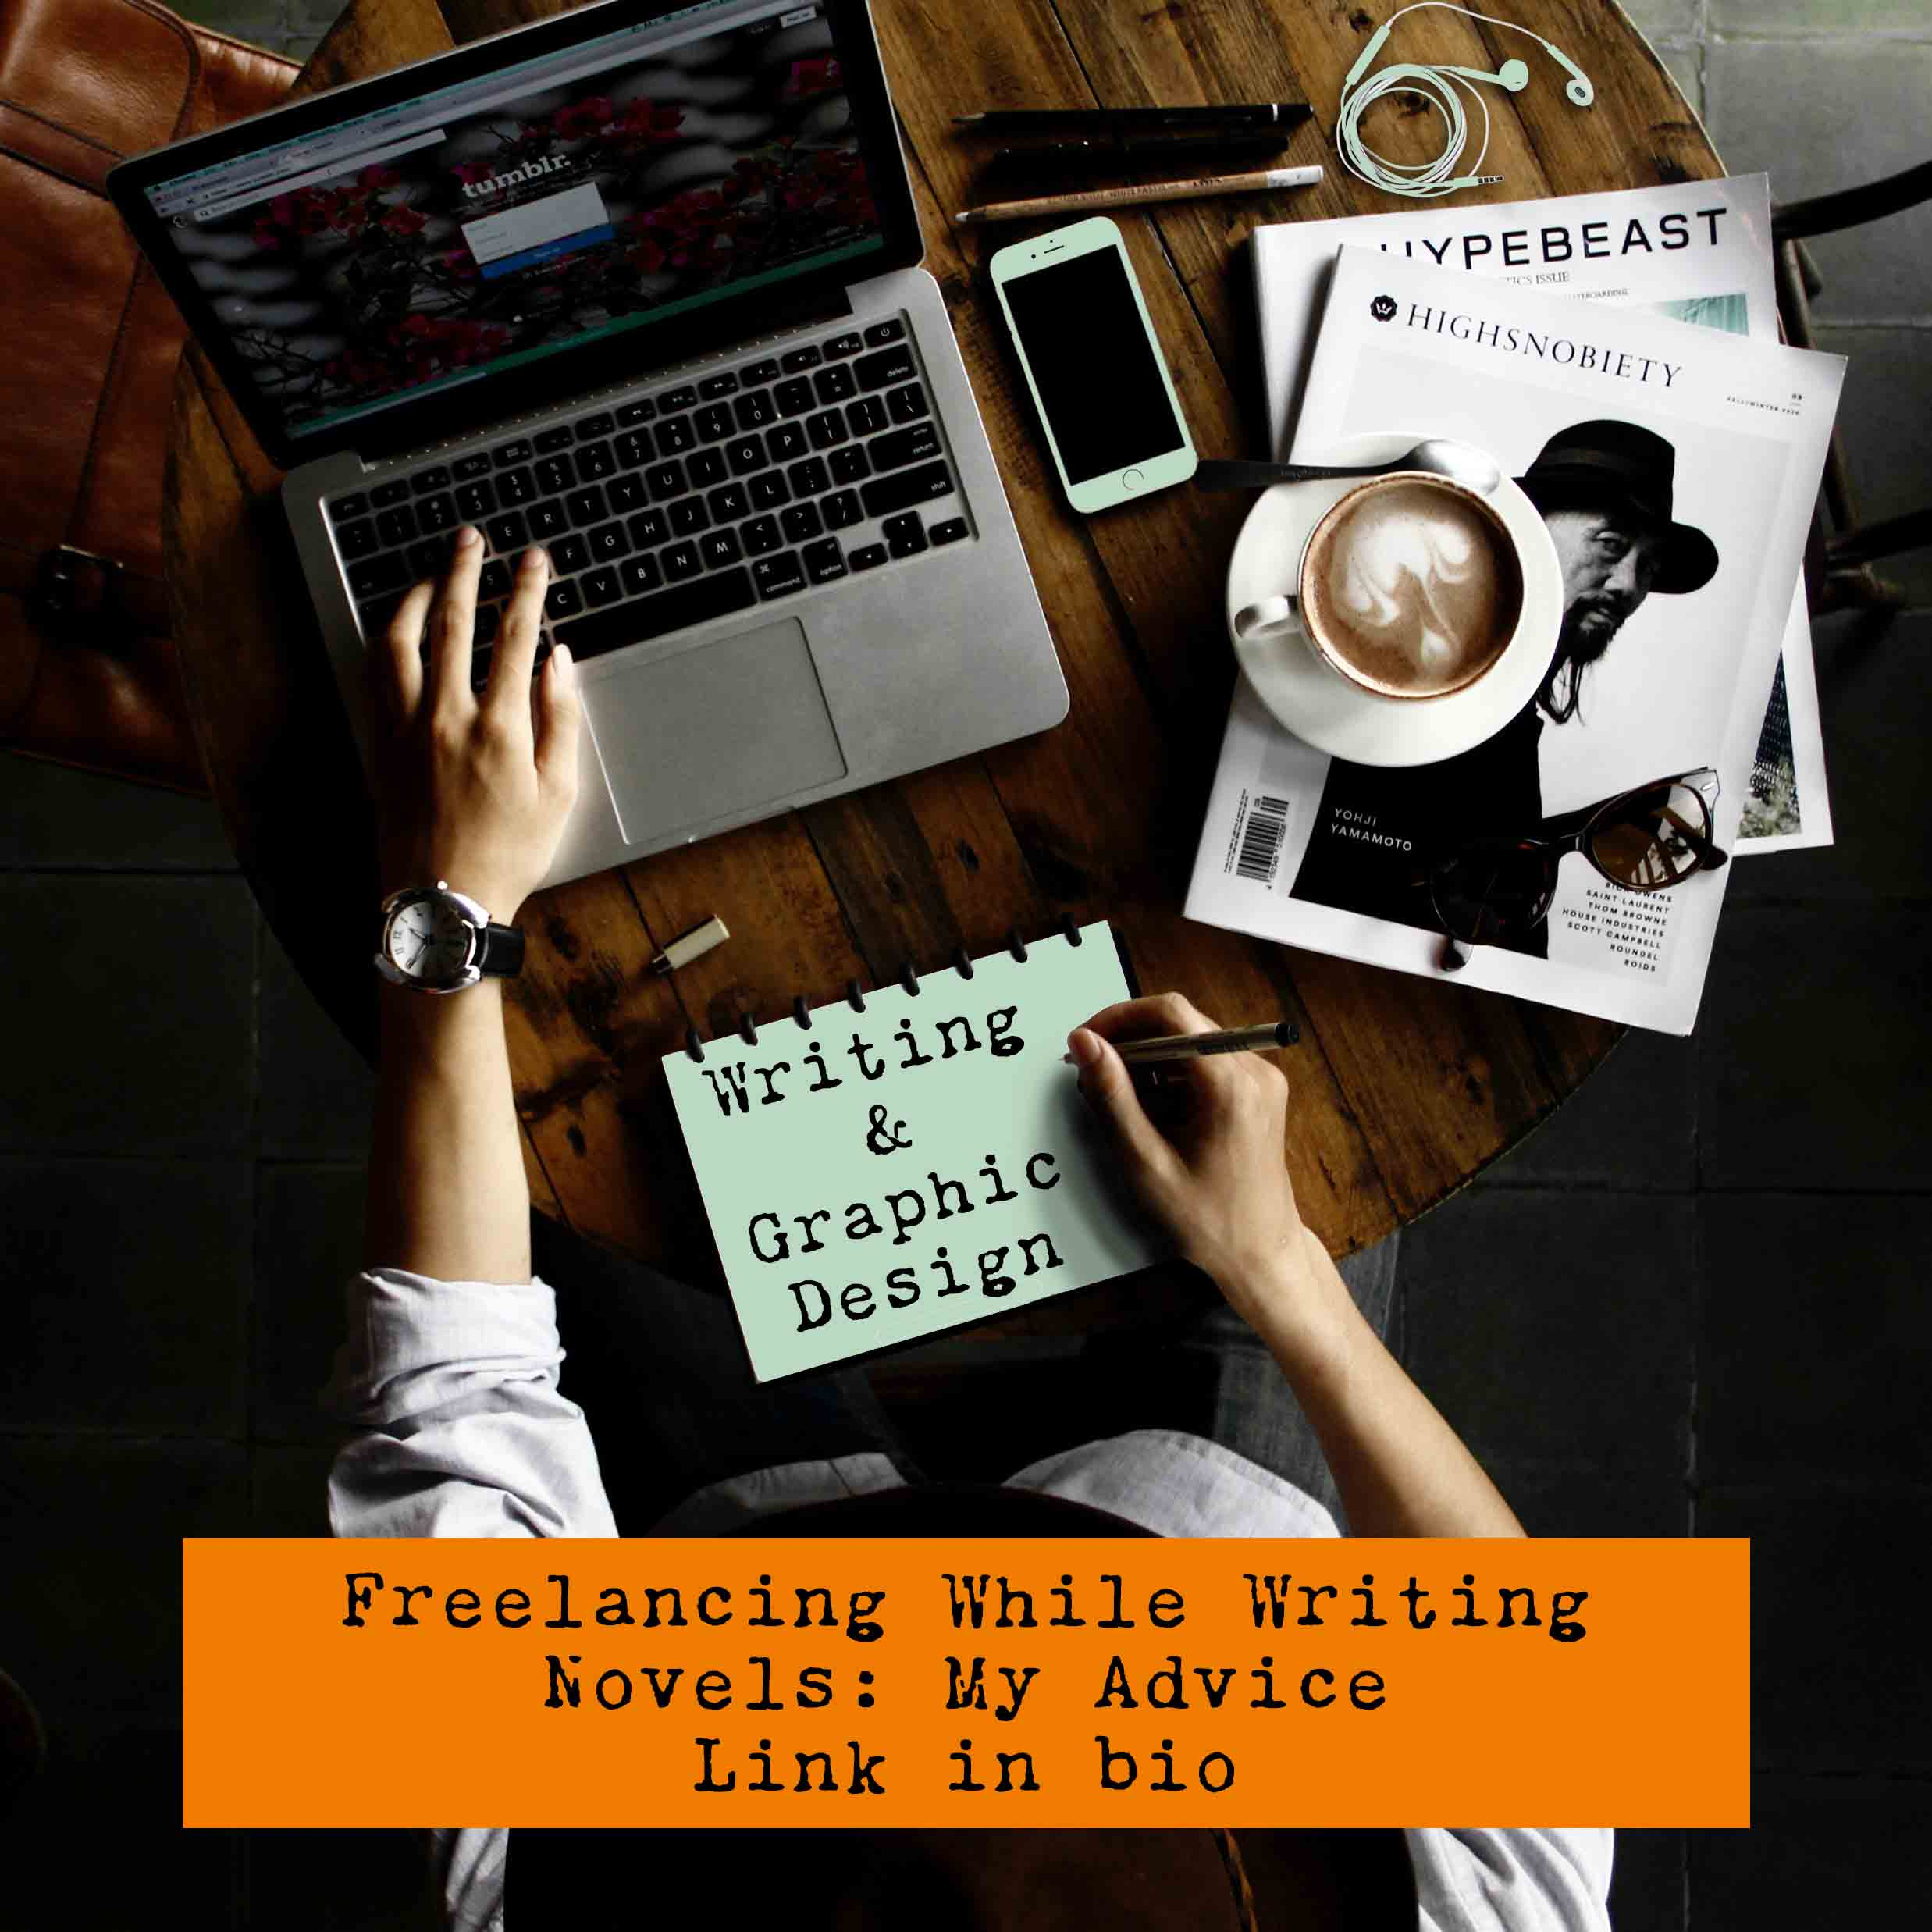 Freelancing in Graphic Design While Novel Writing